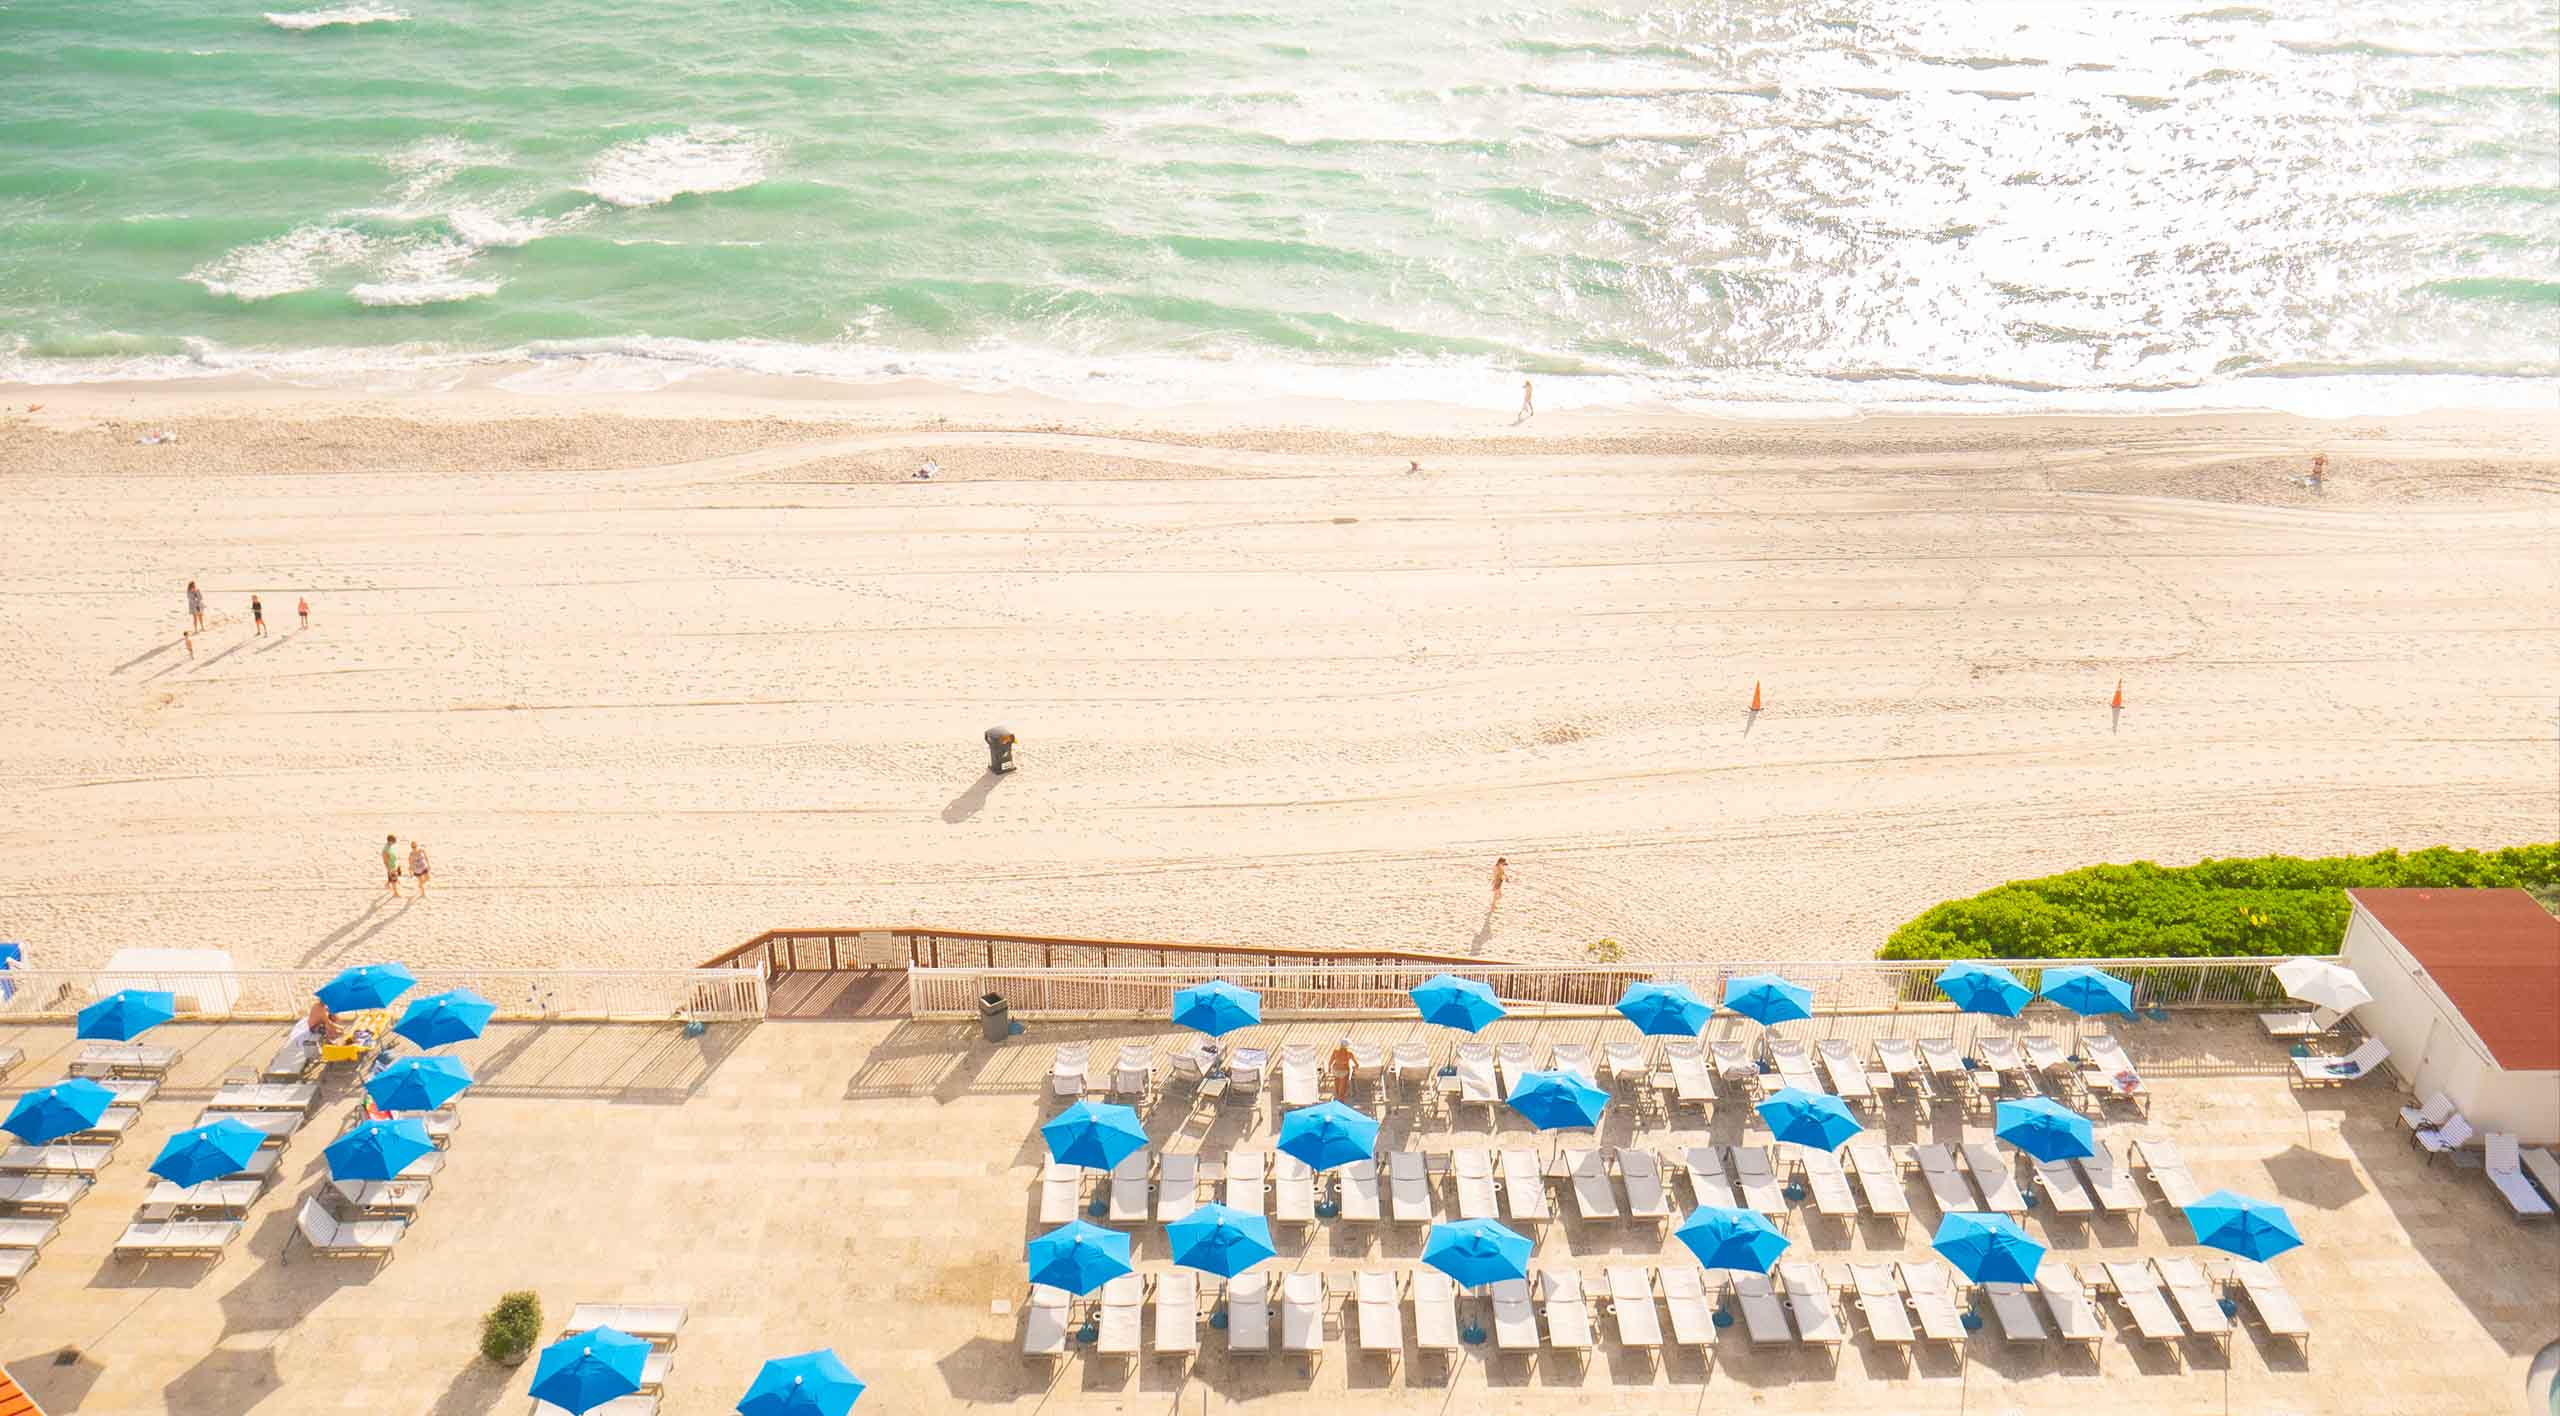 Marco Polo Hotel & Resort Aerial View from Sunny Isles Beach